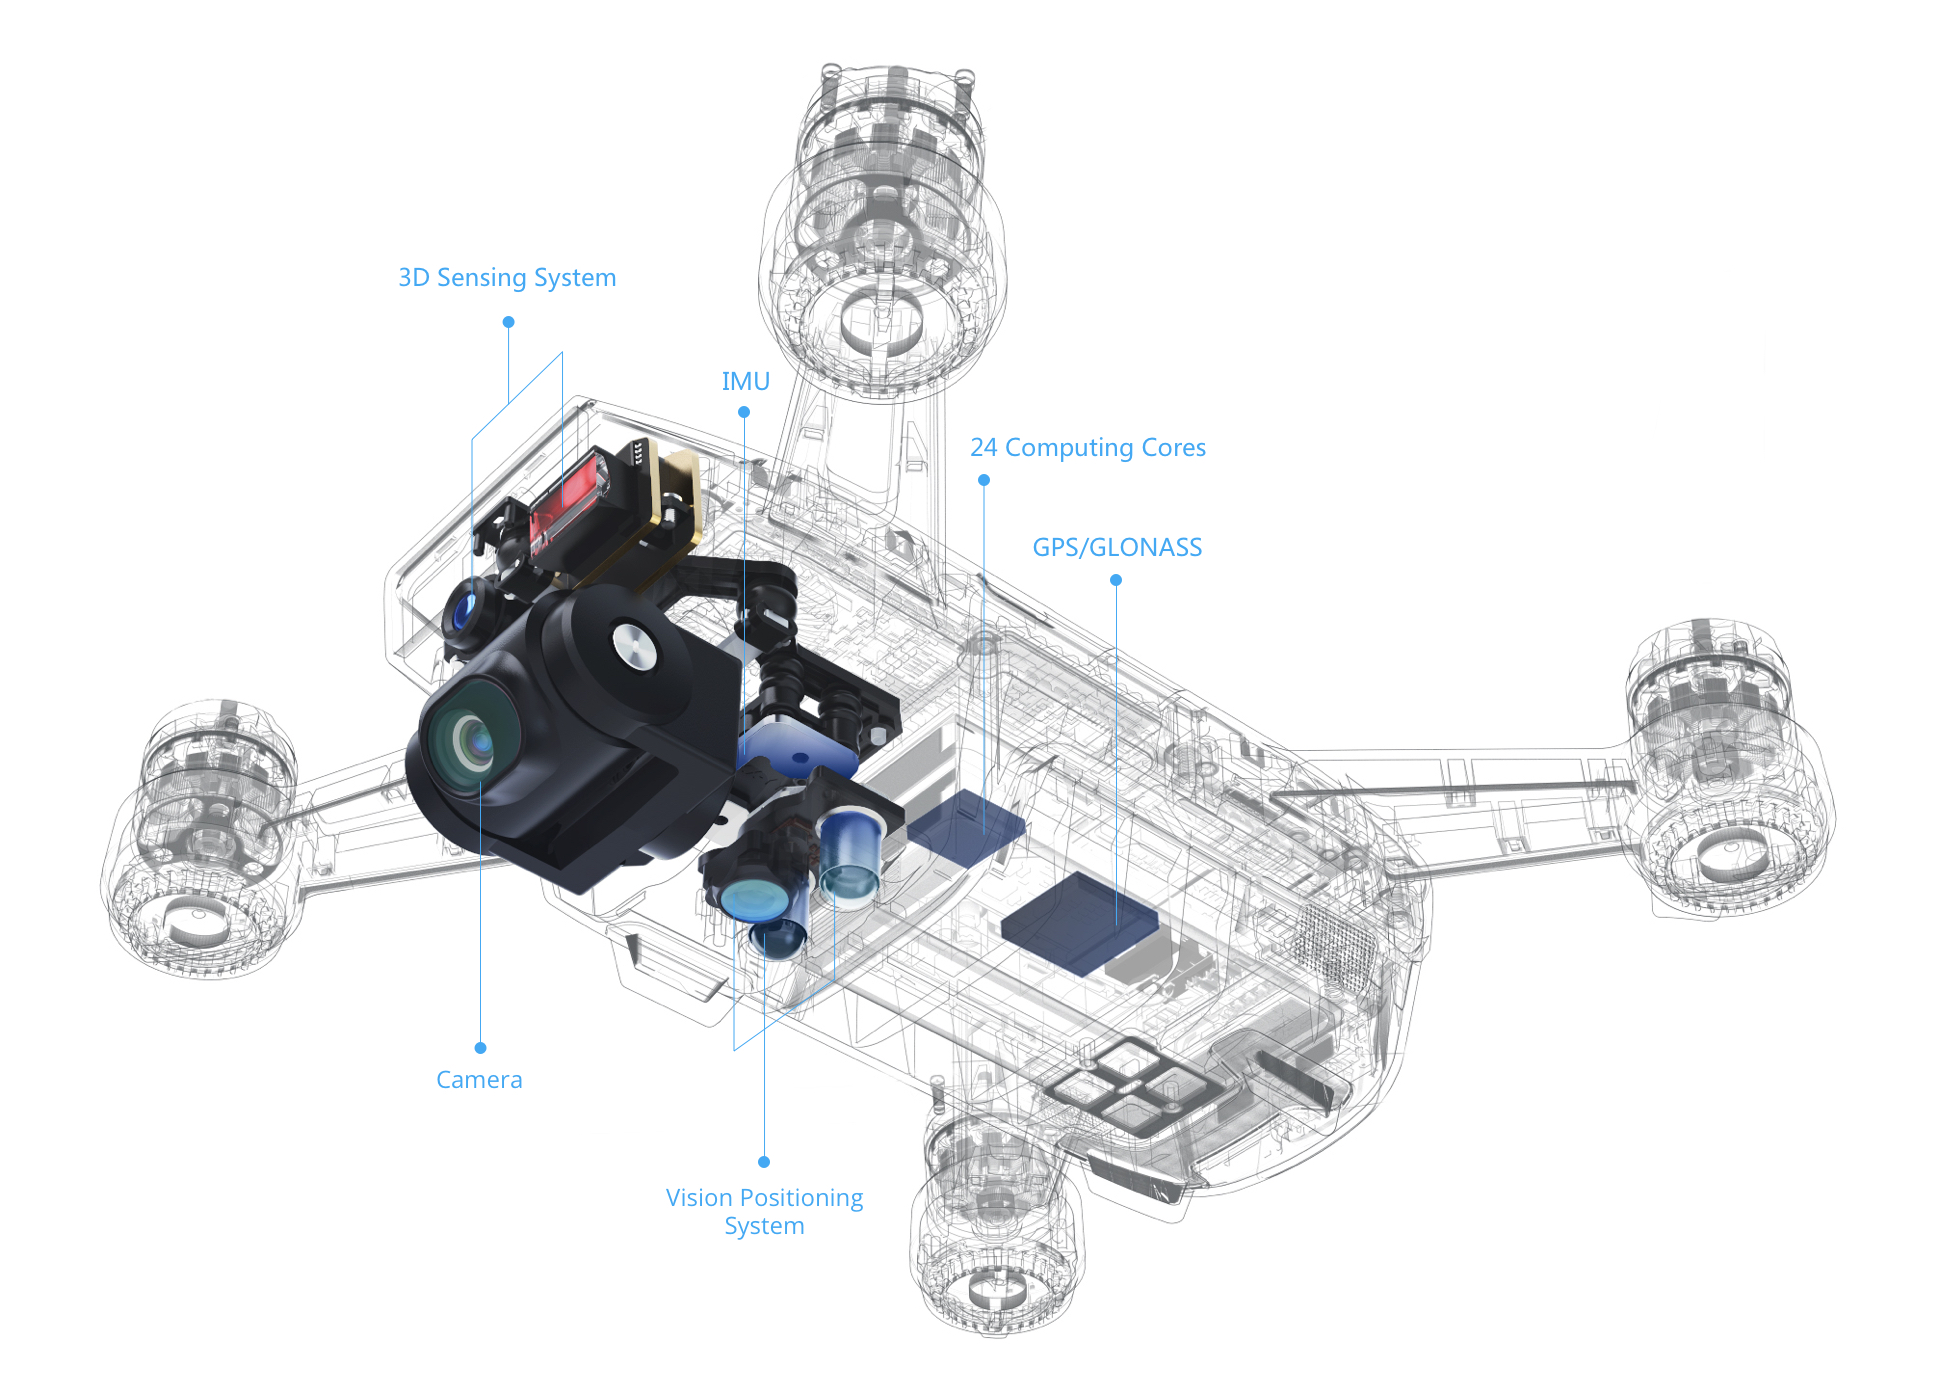 Introducing the SPARK-Seize the Moment | DJI FORUM